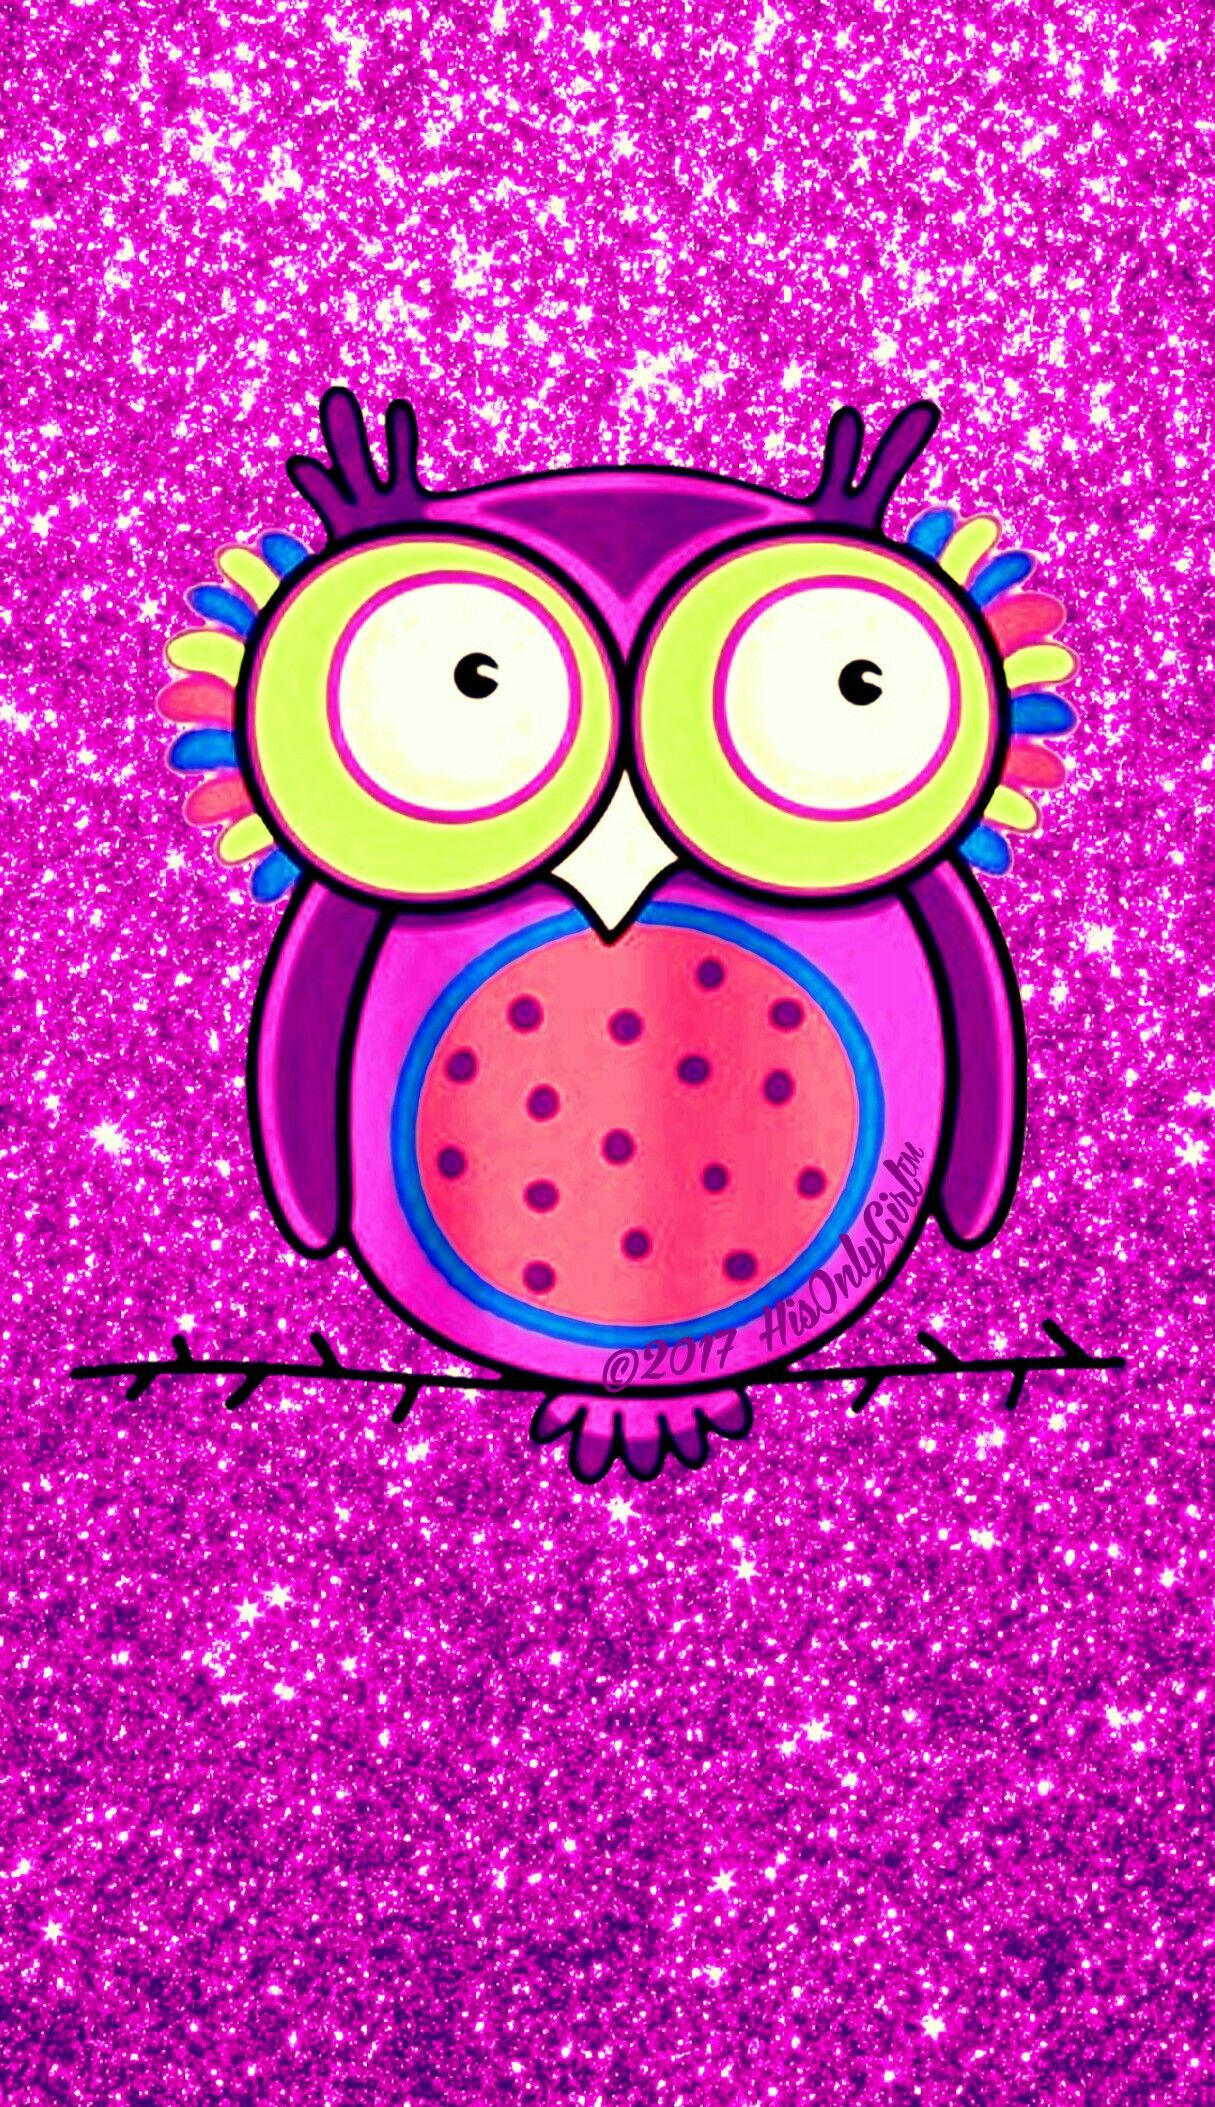 Pink owl glitter wallpaper I created for the app CocoPPa